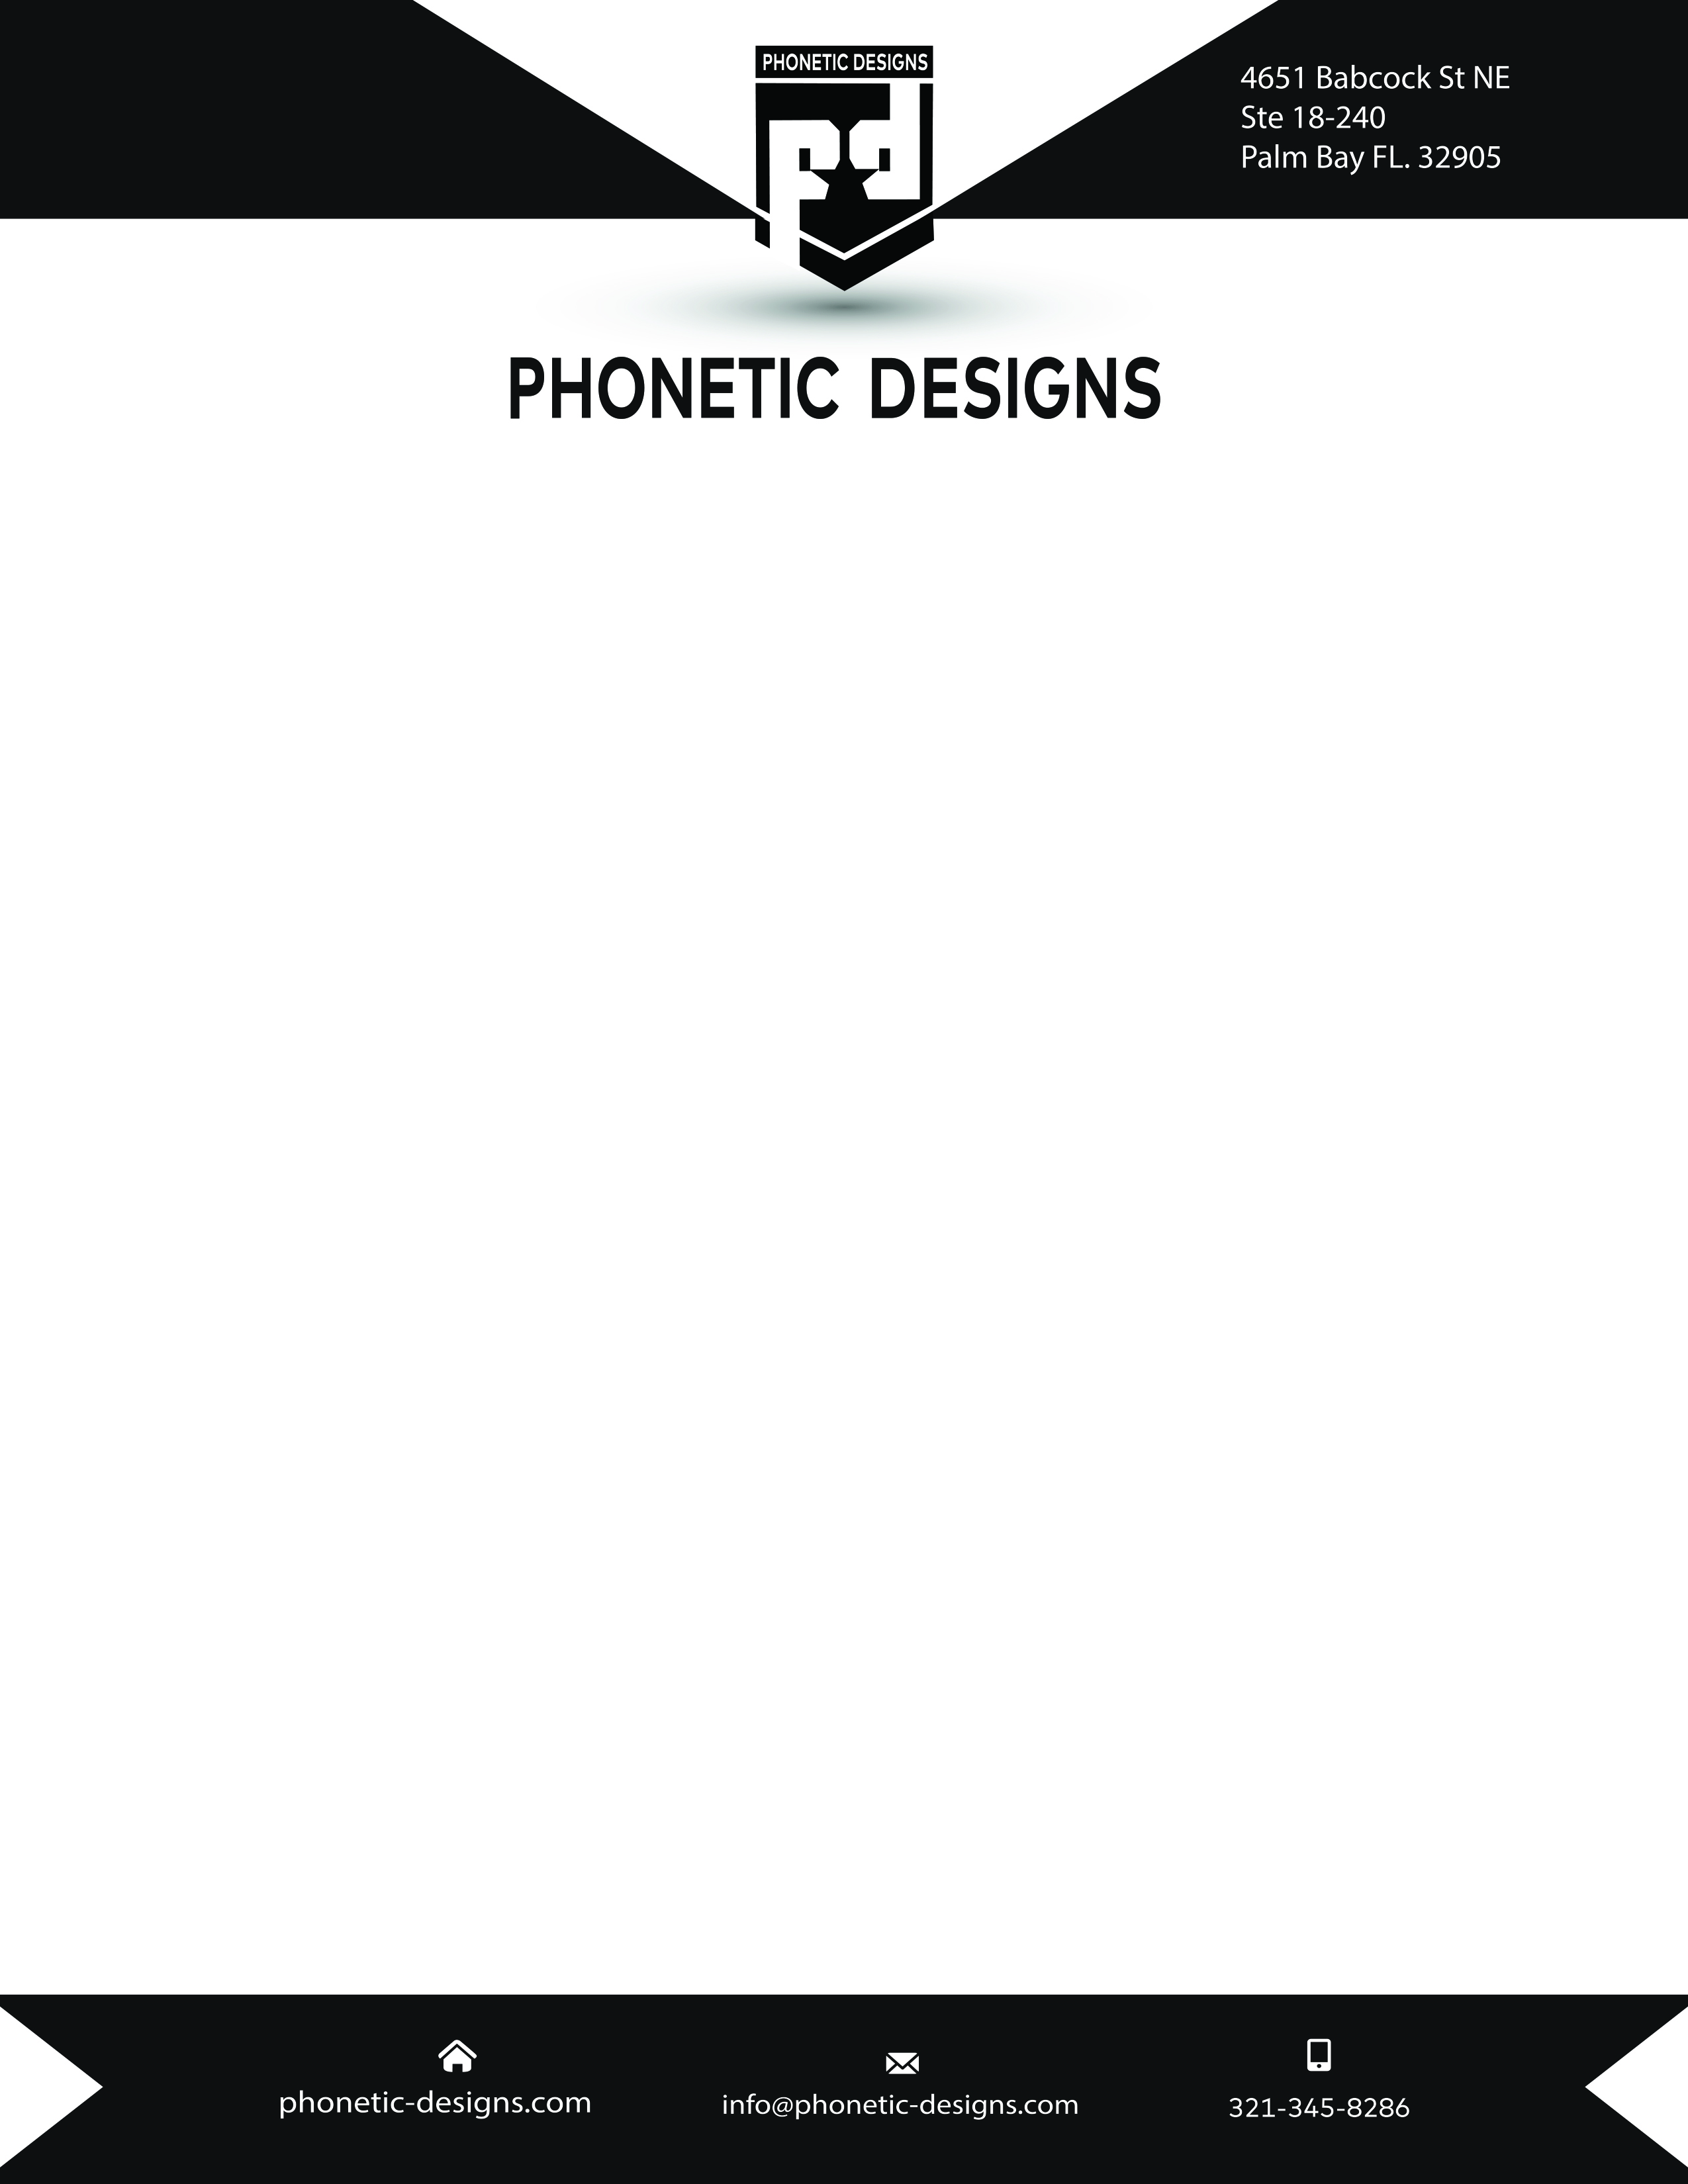 Business letterhead with a modern design